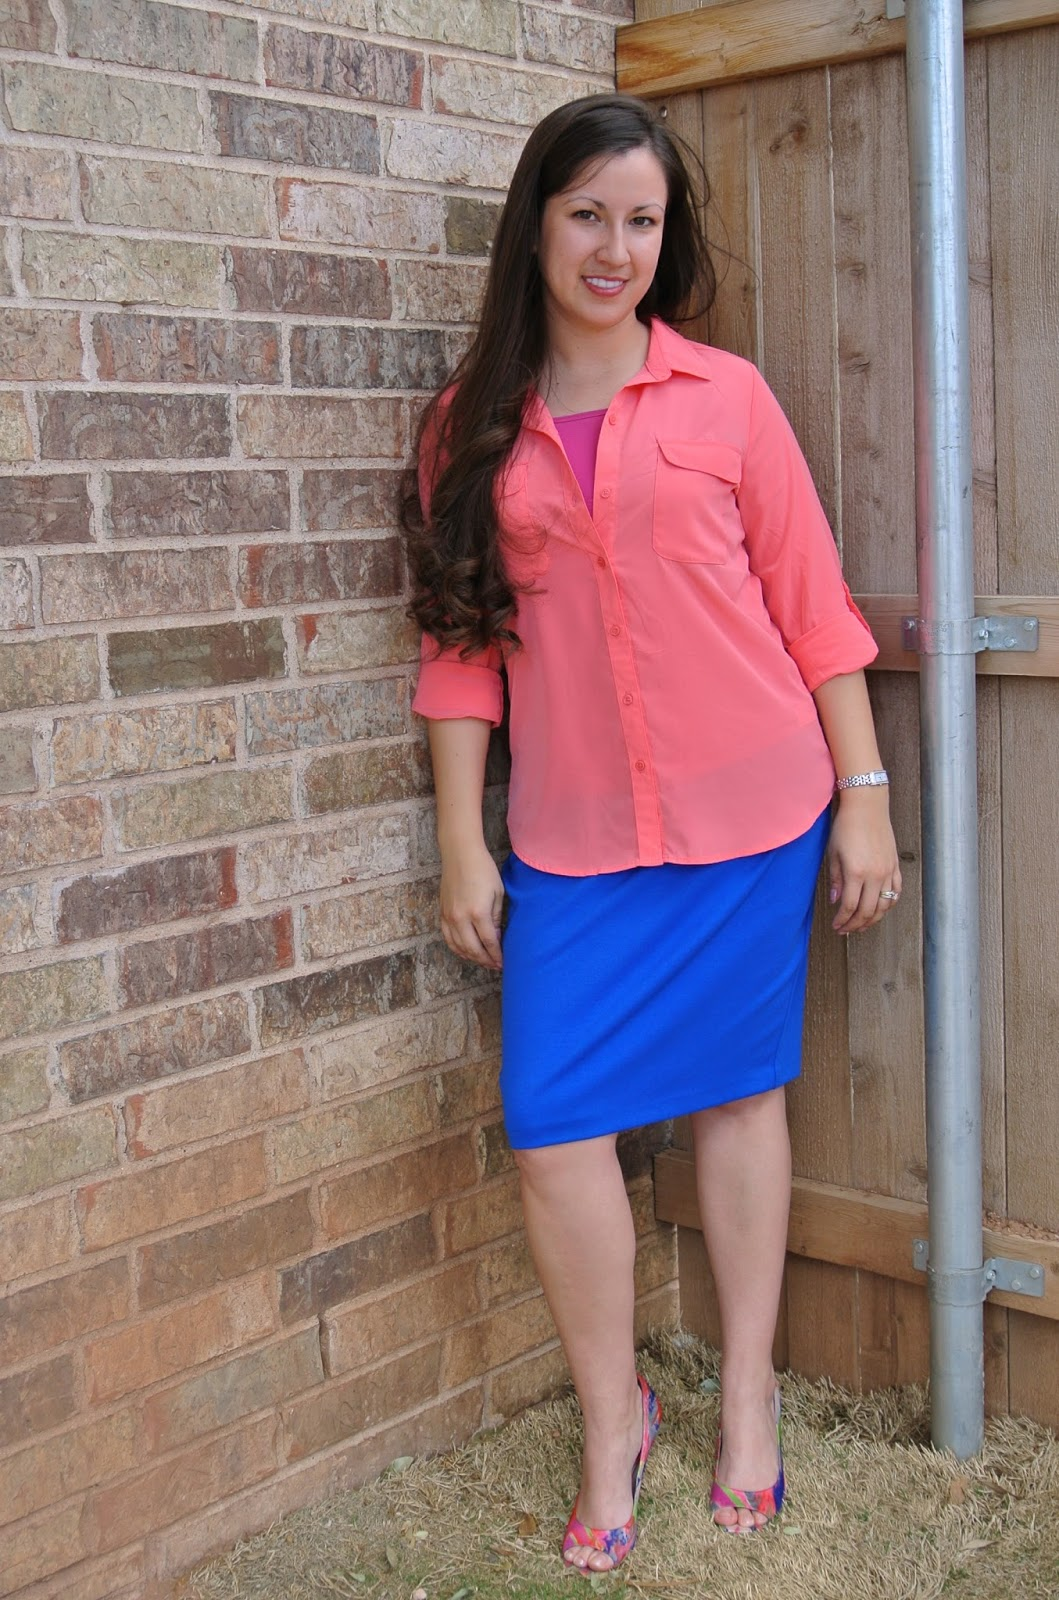 dating a pentecostal girl Pentecostal religions - we are more than just a dating site, we will find compatible matches for you visit our site to find out more or read users reviews.